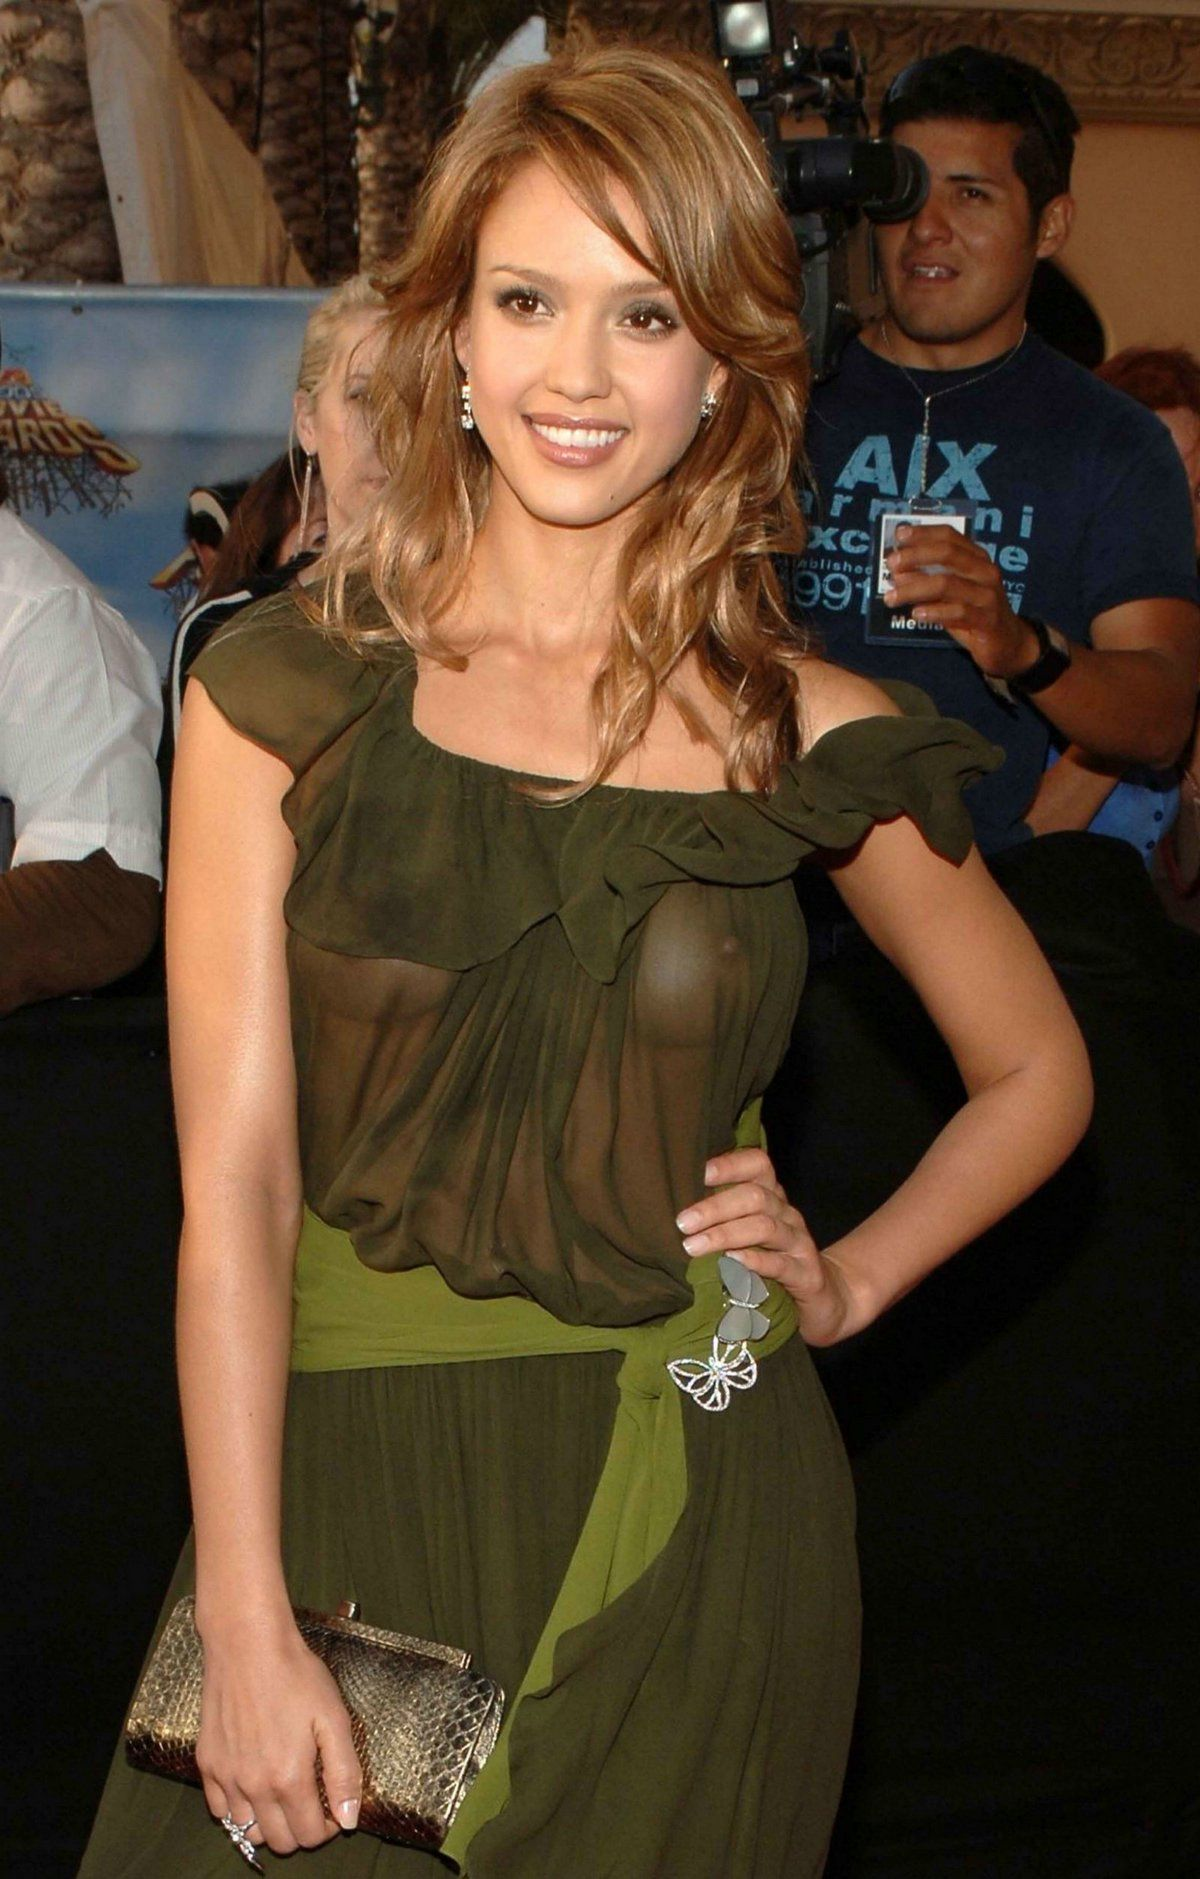 Nude Celebrity Jessica Alba Pictures and Videos